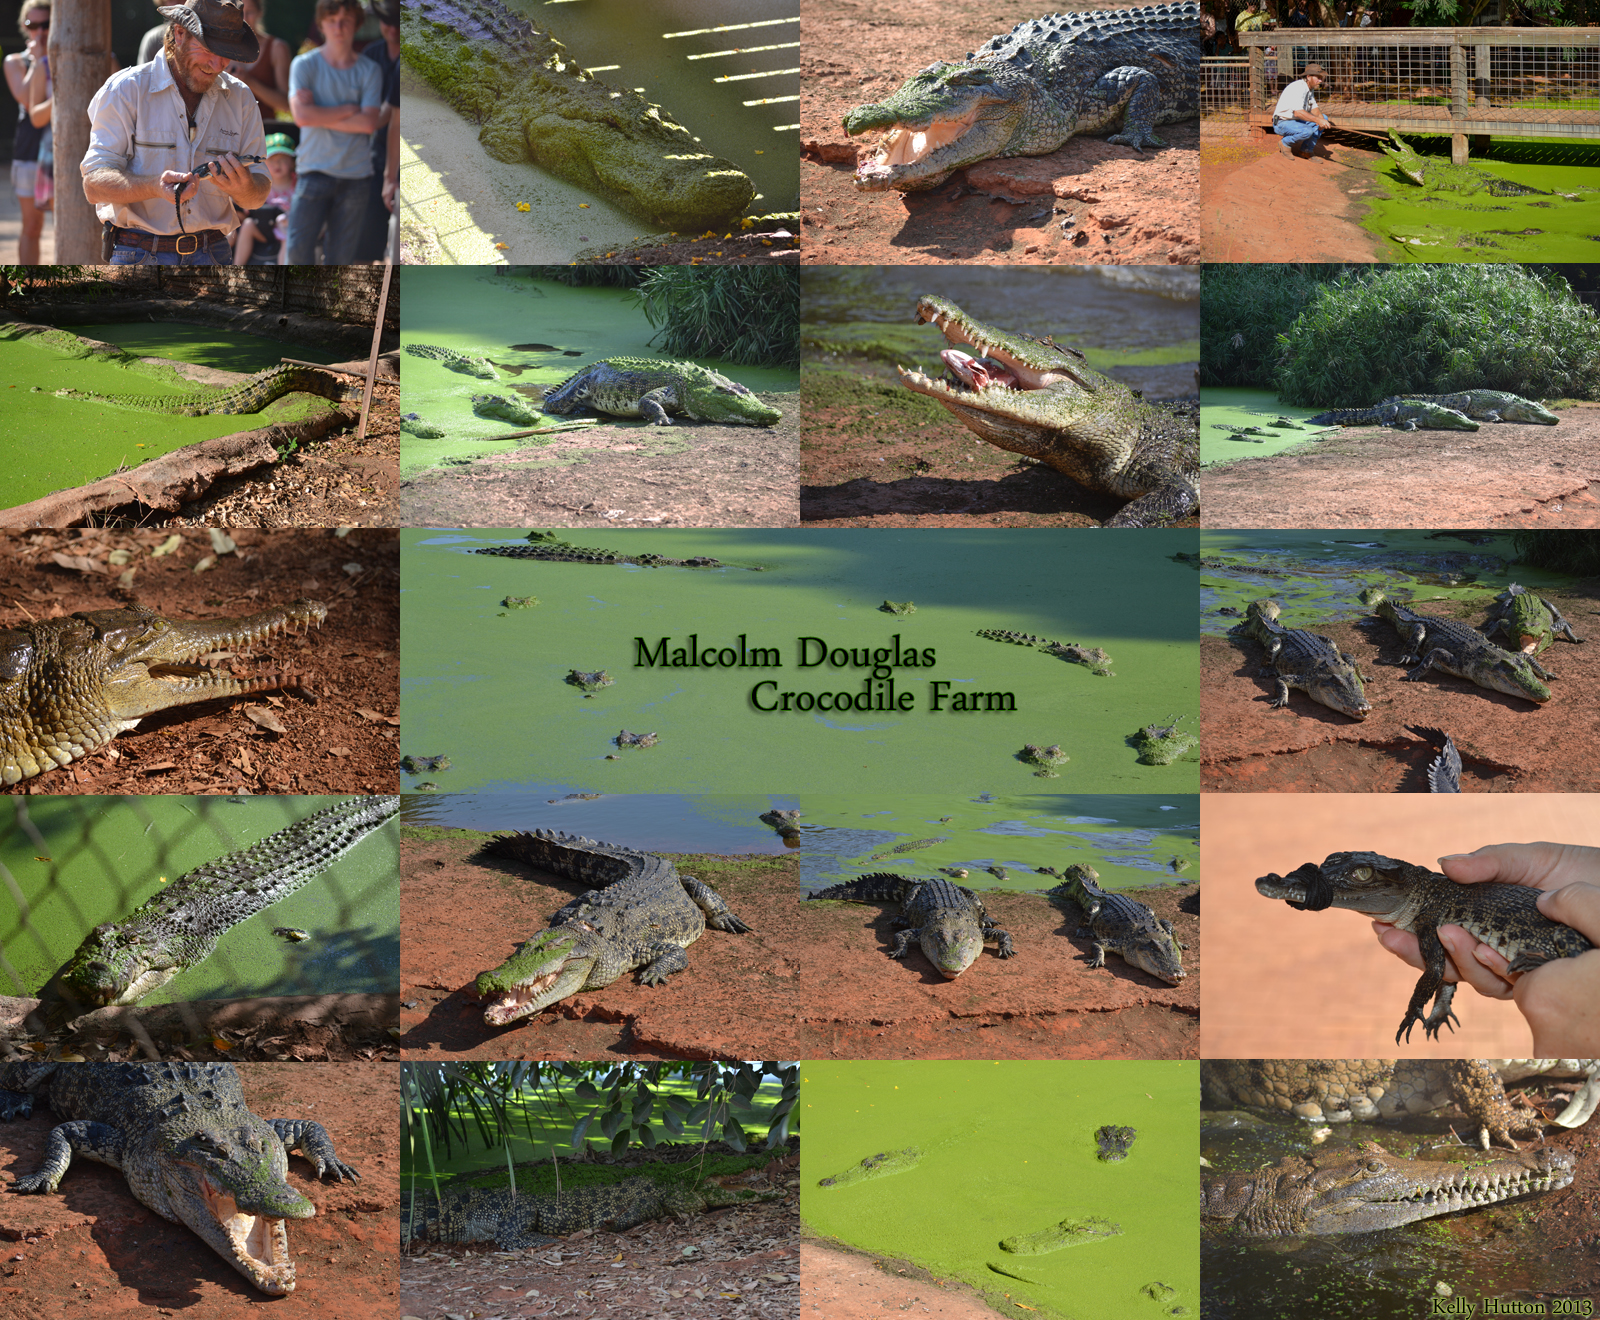 The Malcolm Douglas Crocodile Park Image